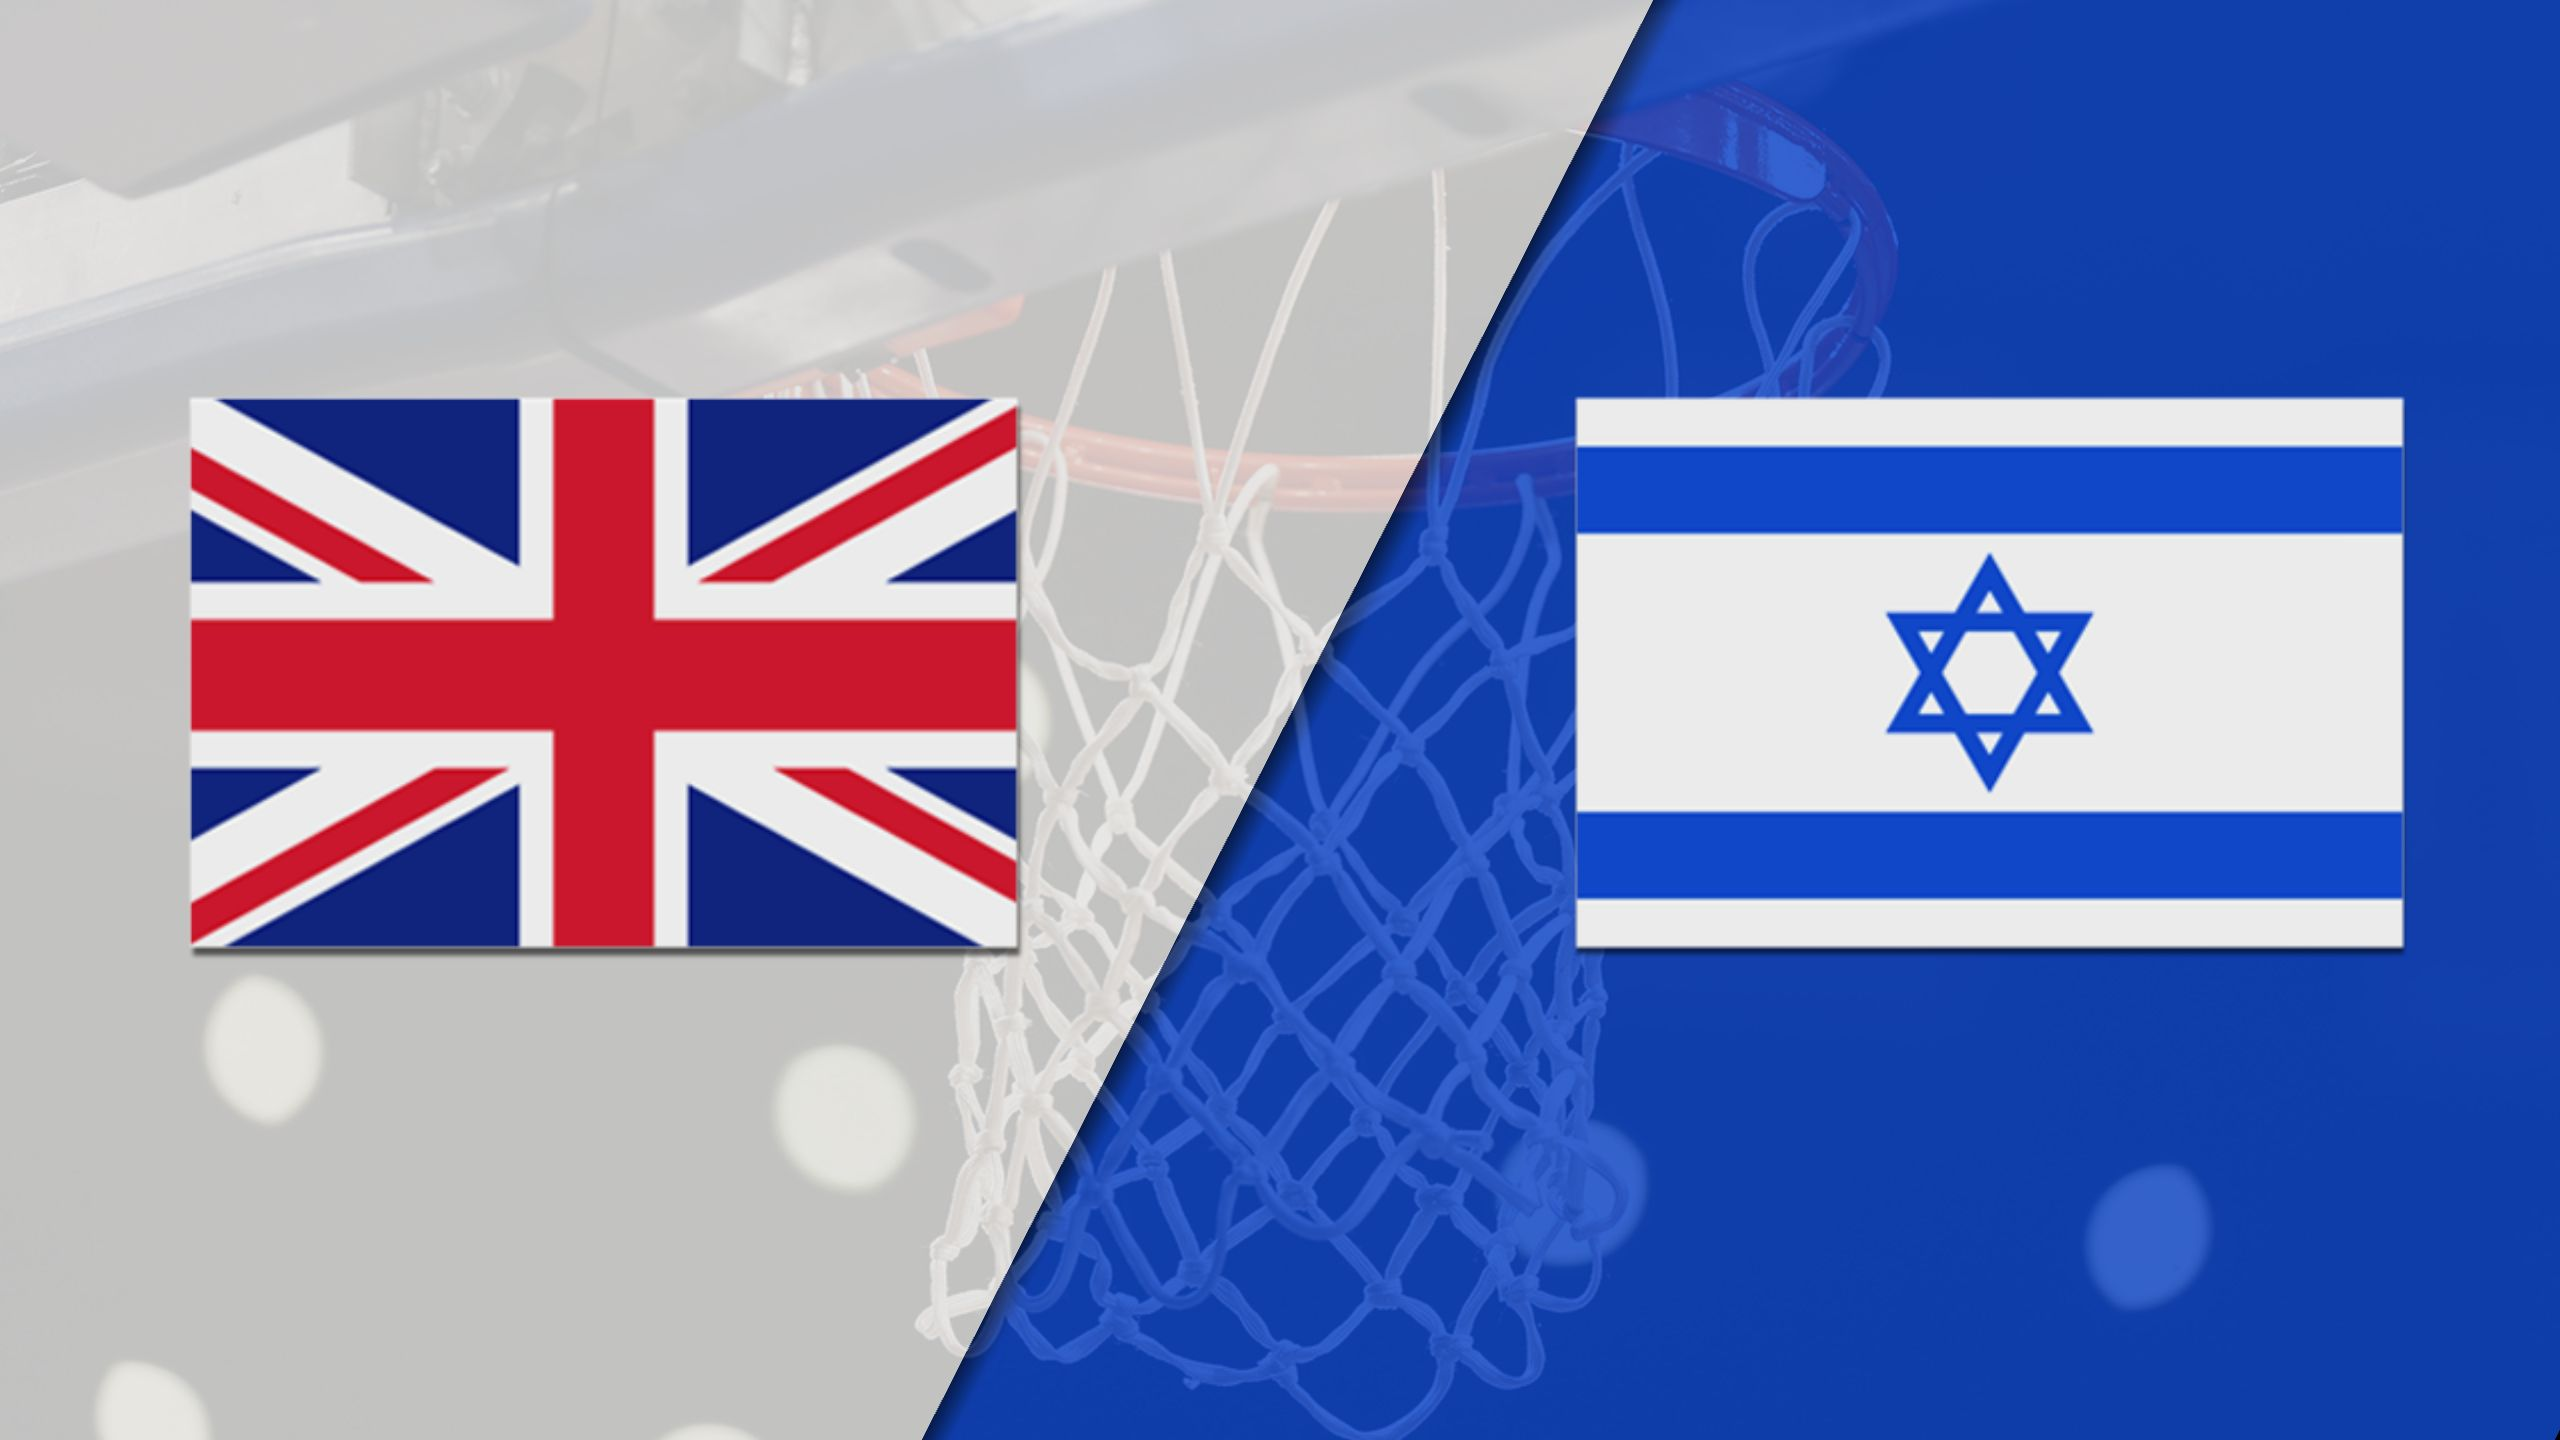 Great Britain vs. Israel (FIBA World Cup 2019 Qualifier)